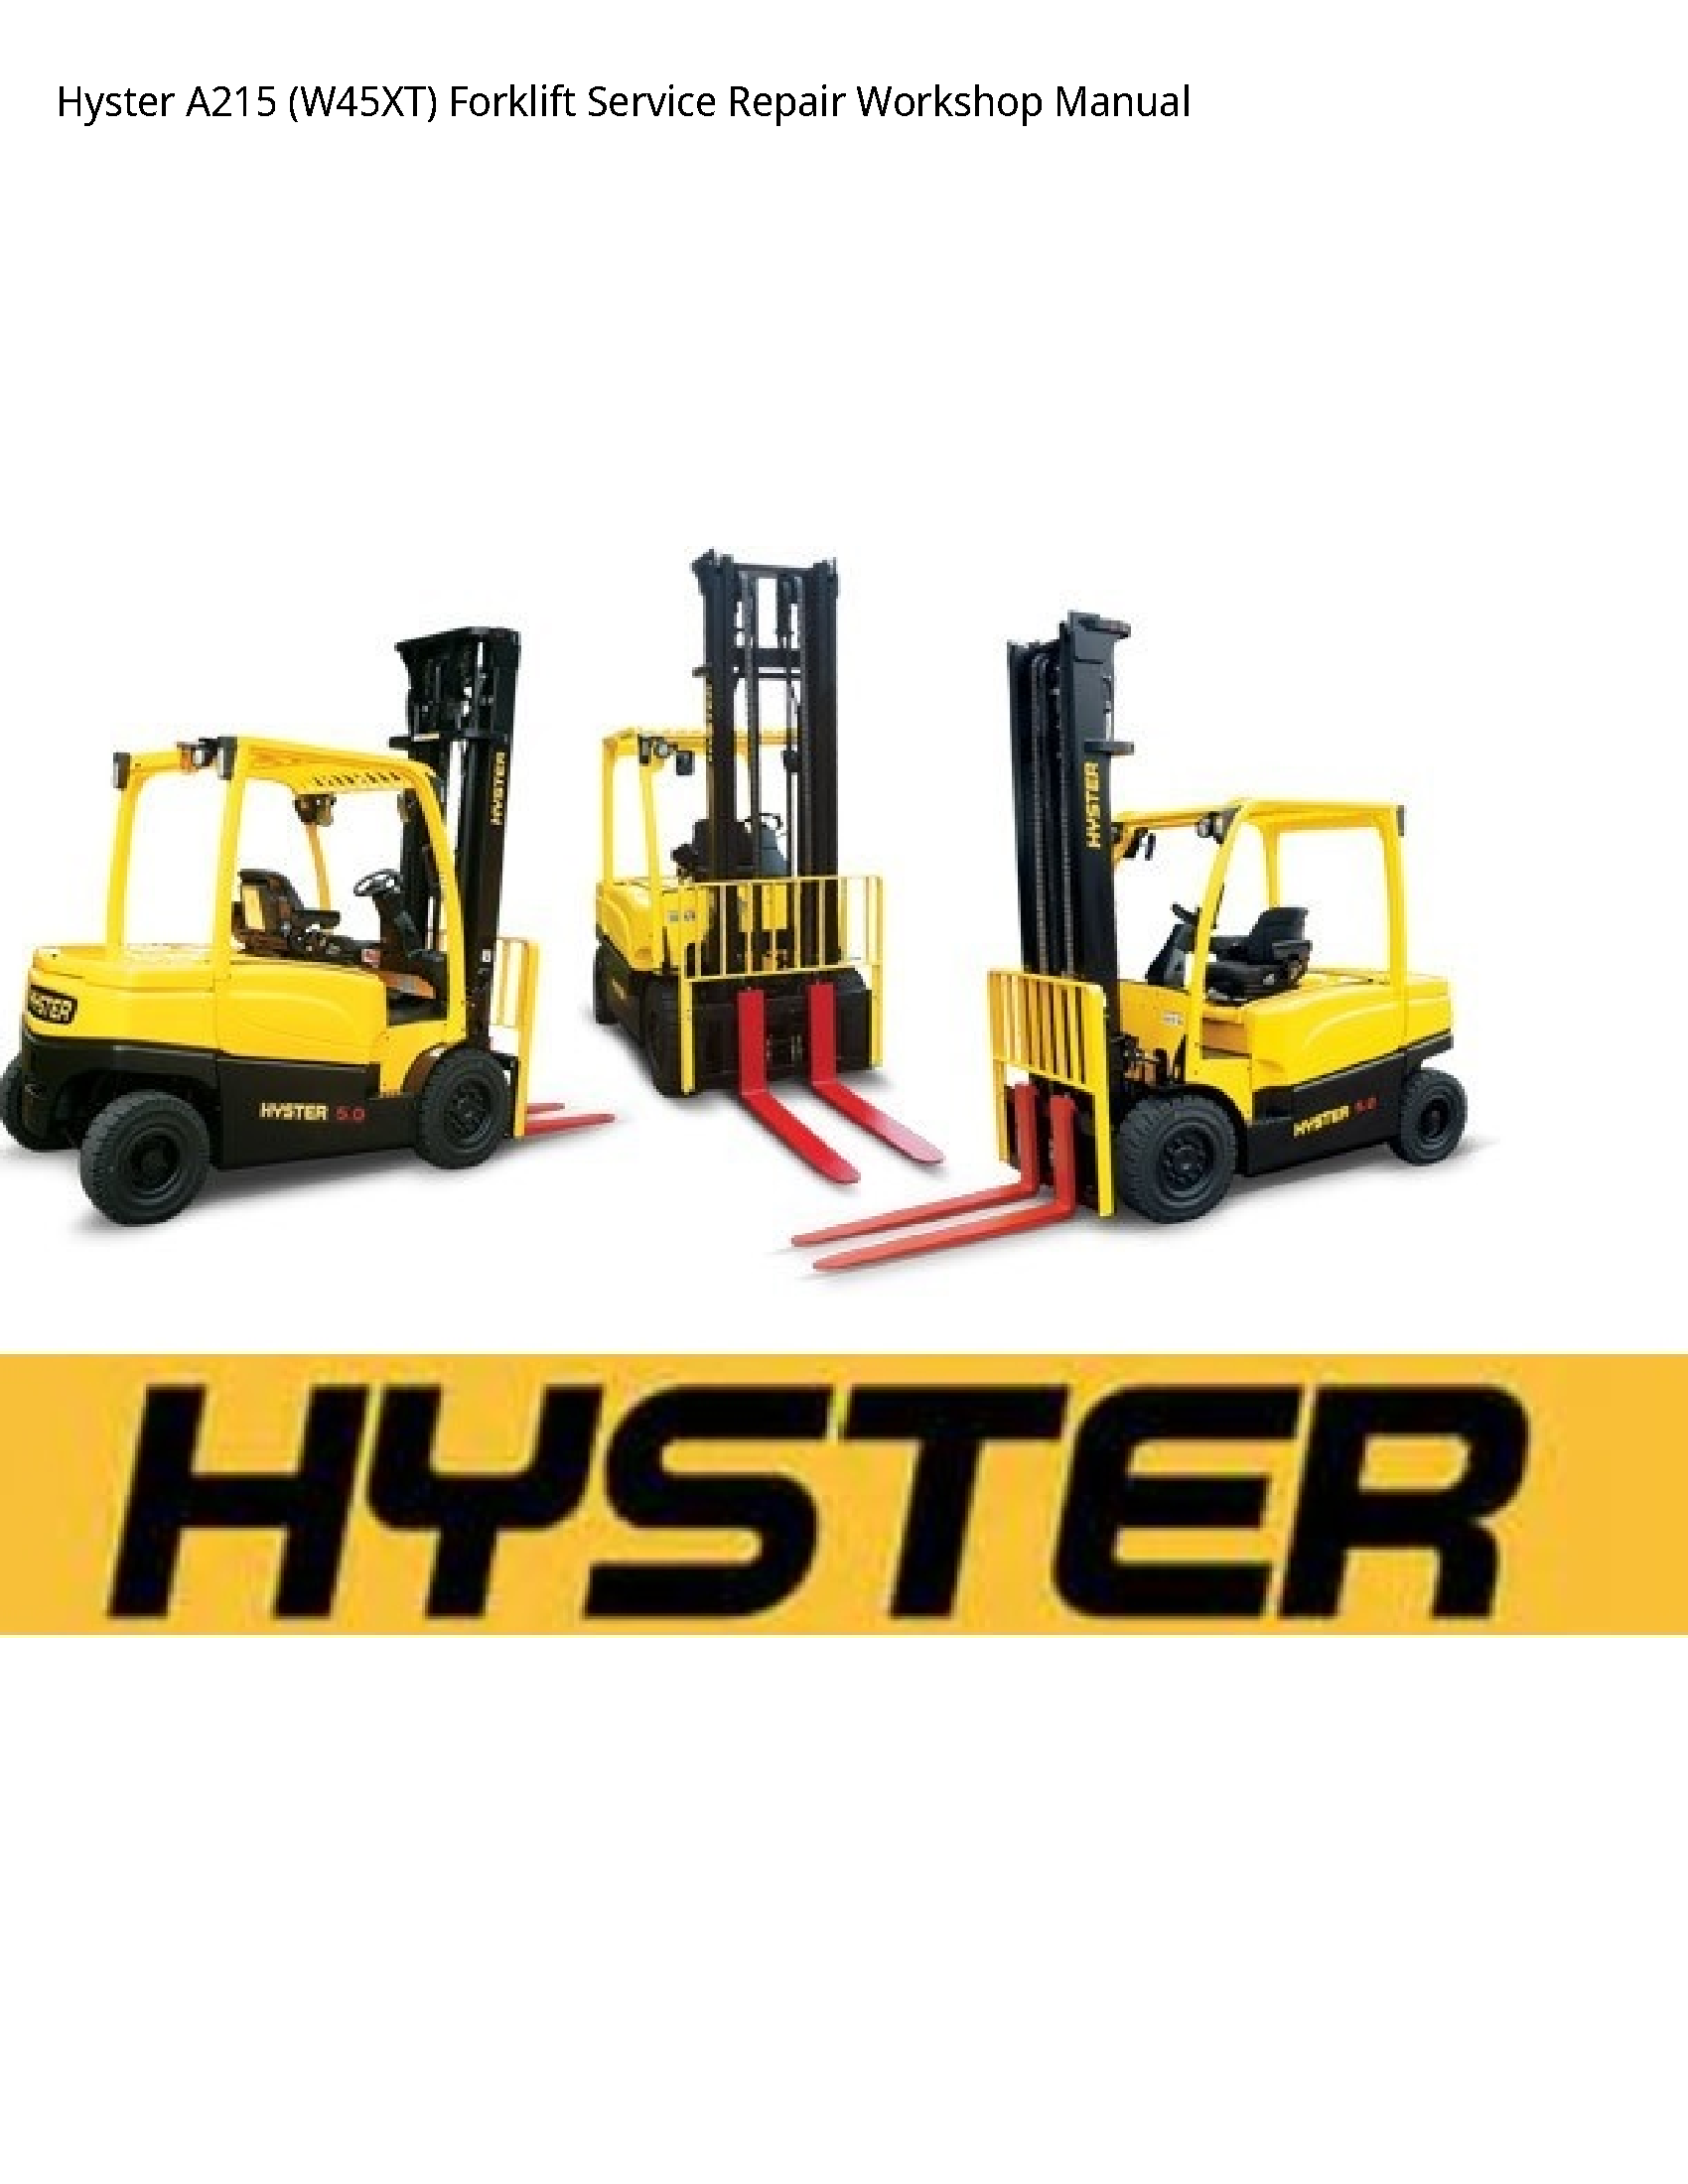 Hyster A215 Forklift manual